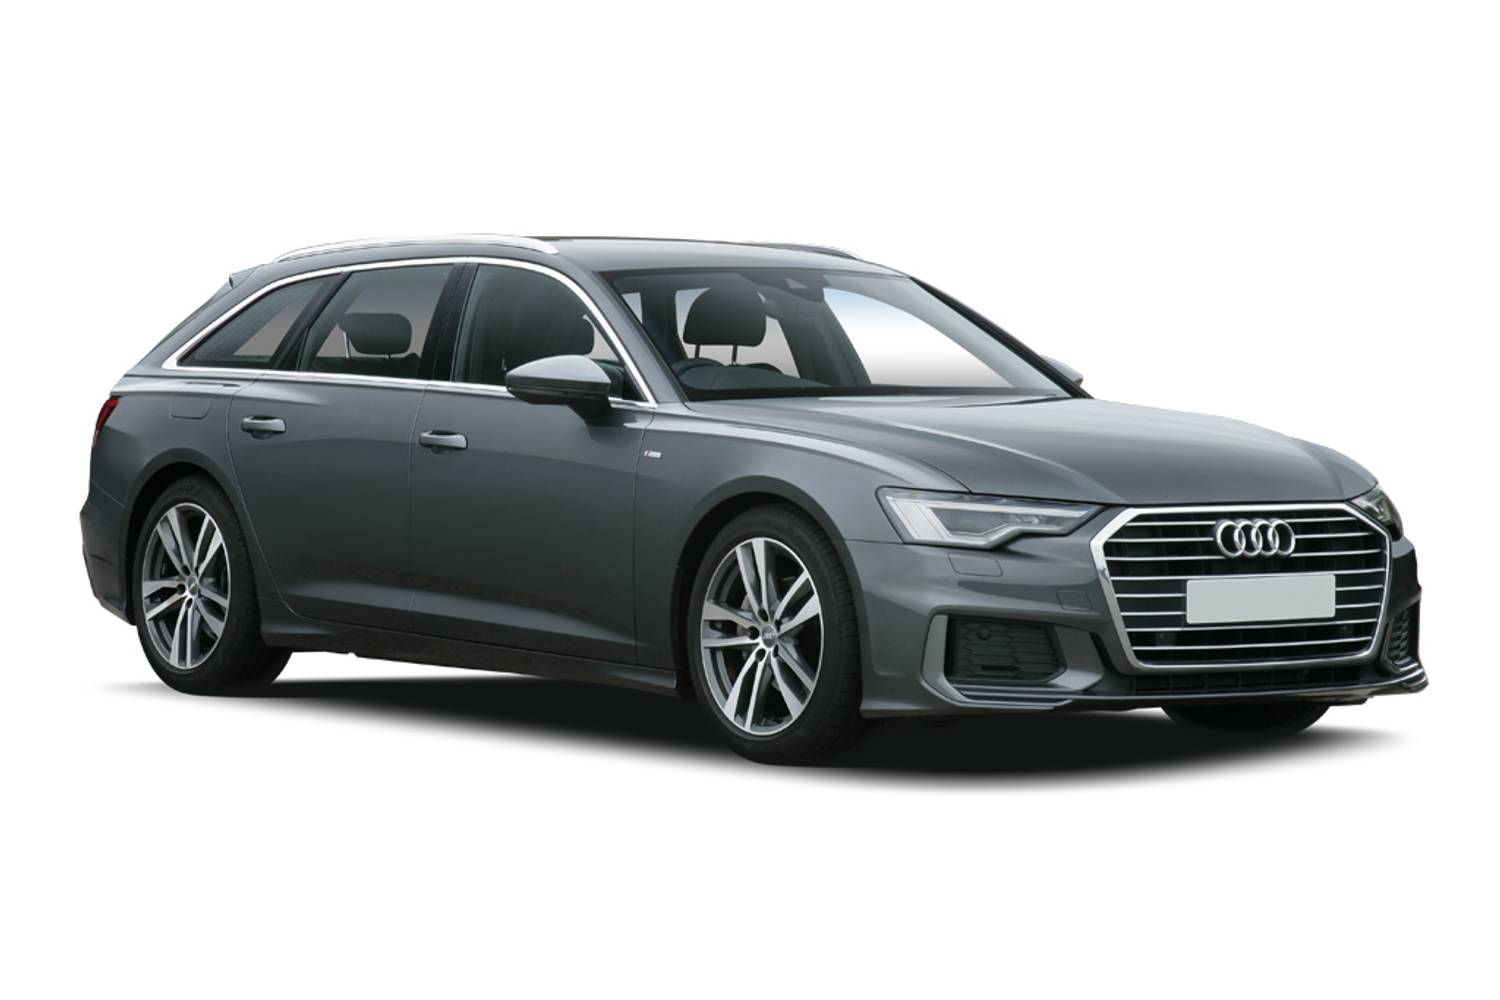 Audi A6 Avant 5dr Front Three Quarter